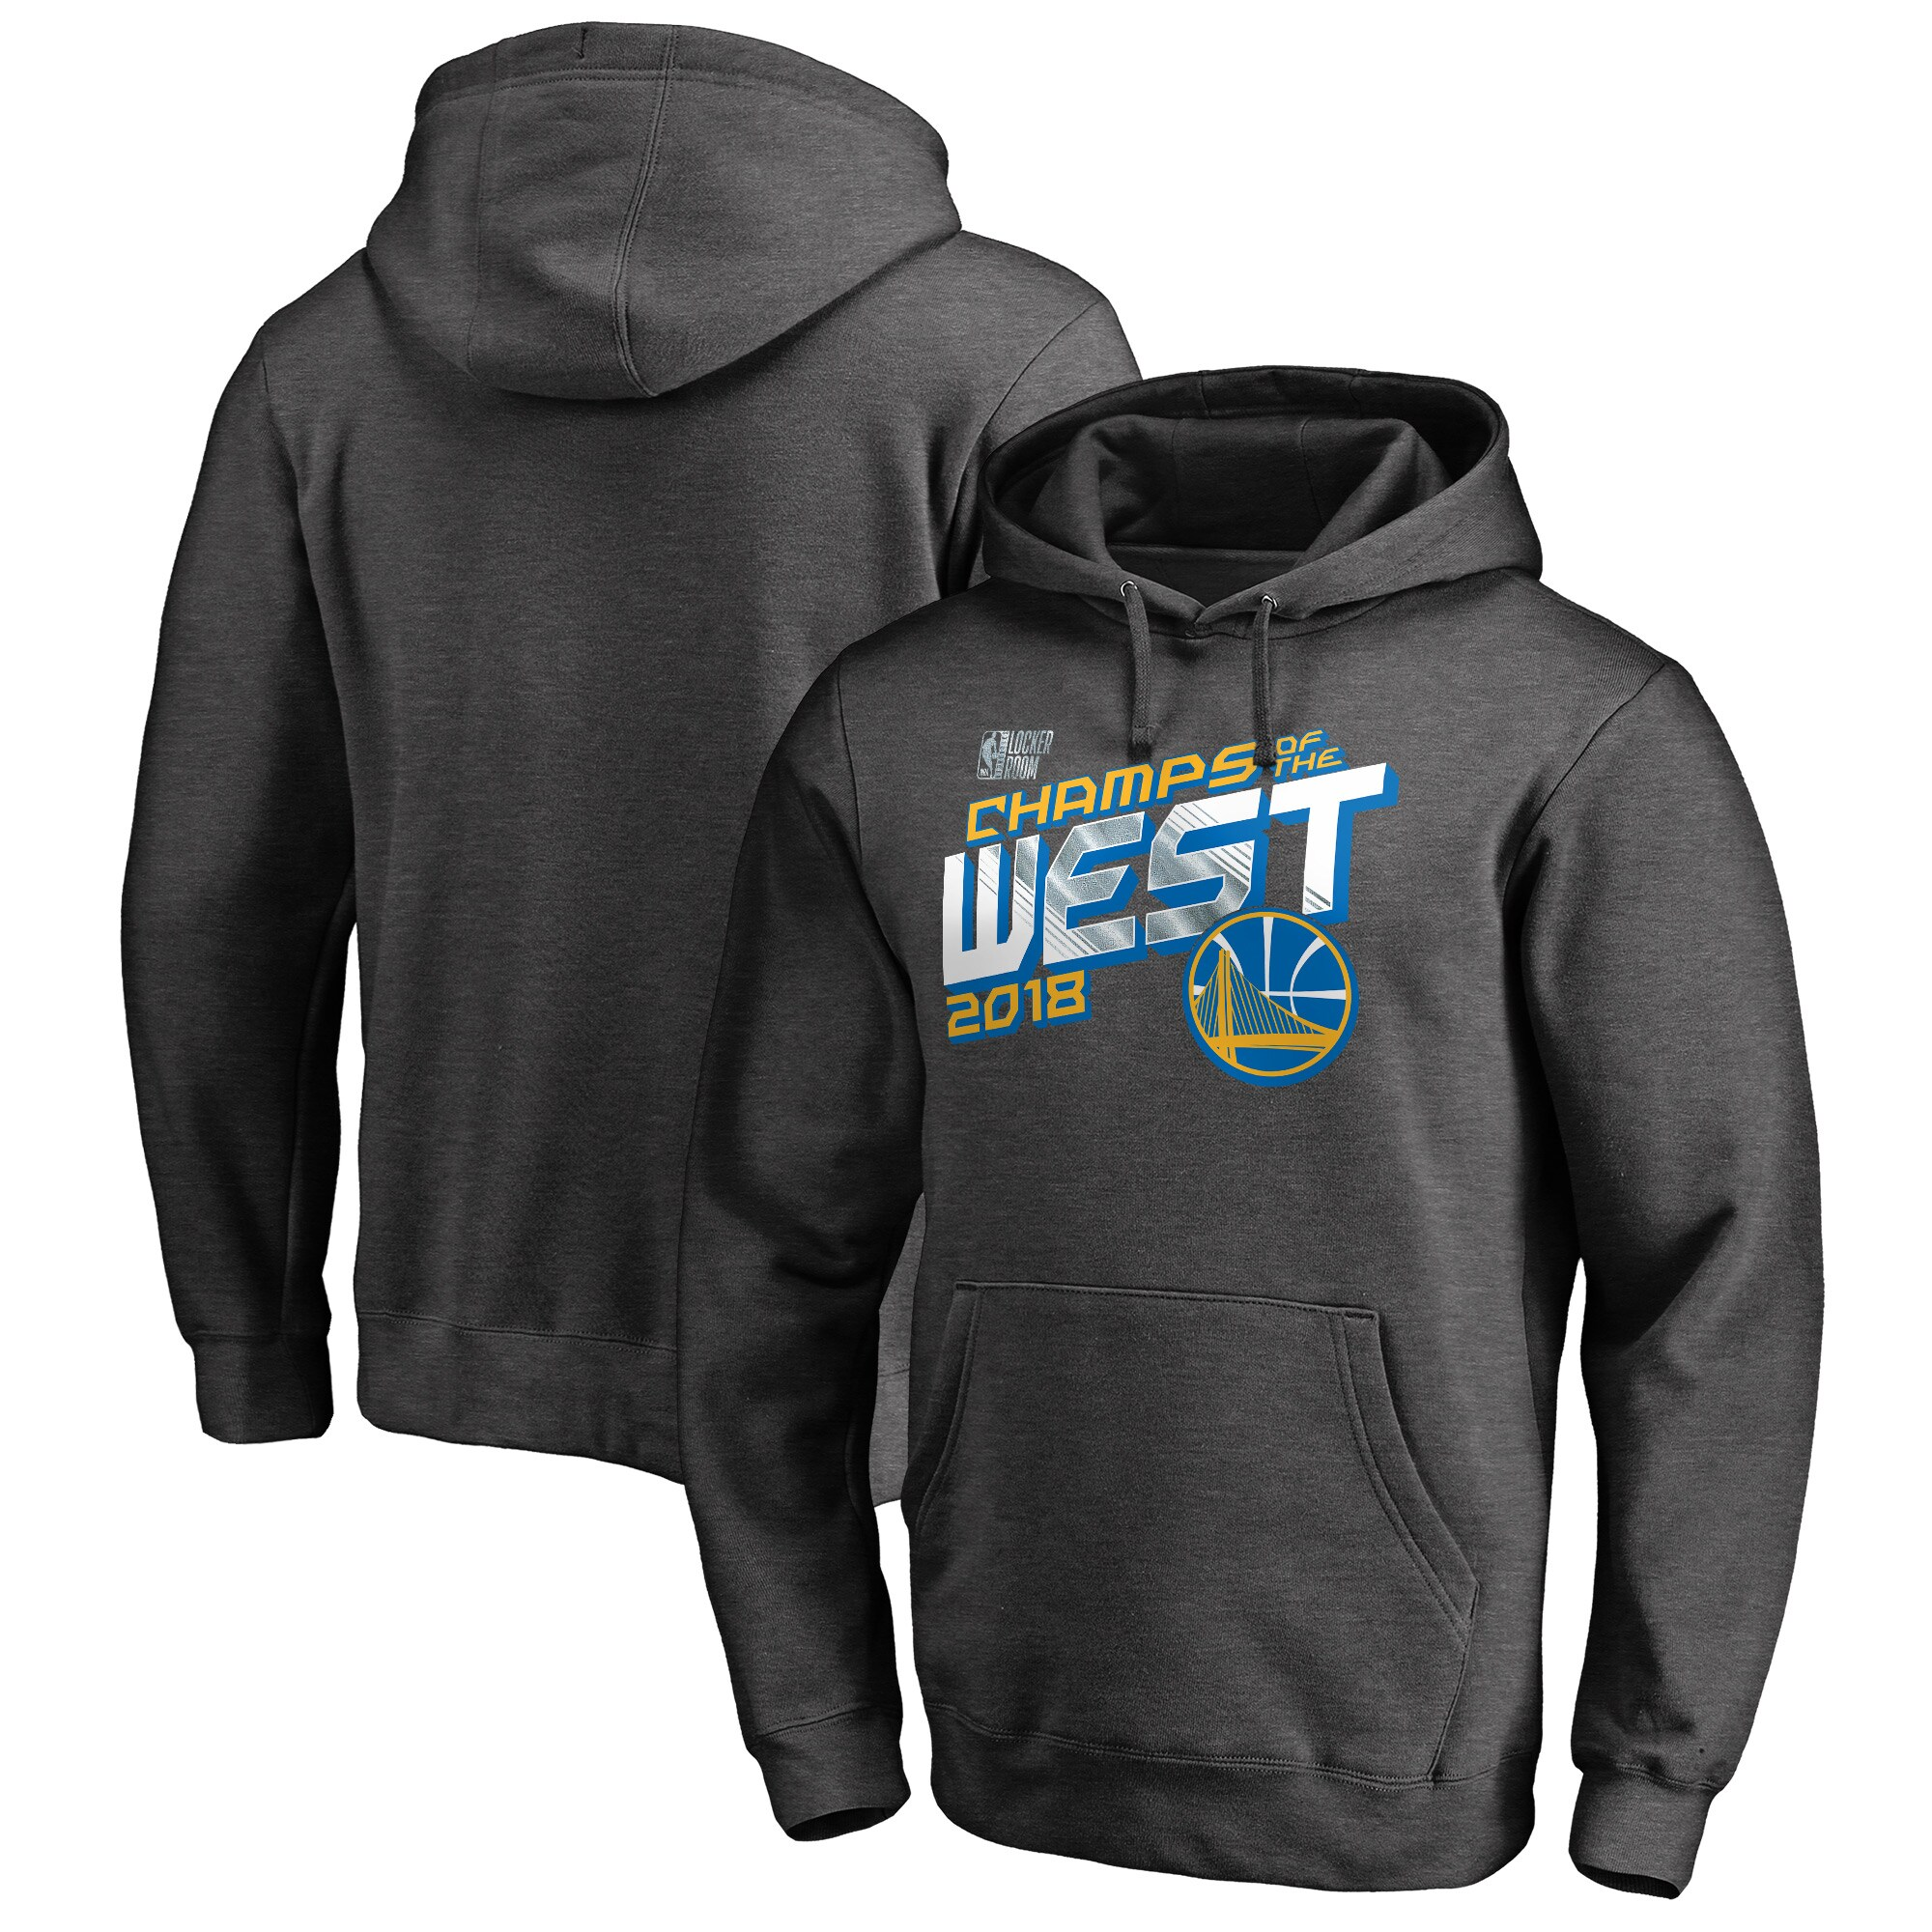 Golden State Warriors Fanatics Branded 2018 Western Conference Champions Locker Room Pullover Hoodie - Heather Charcoal